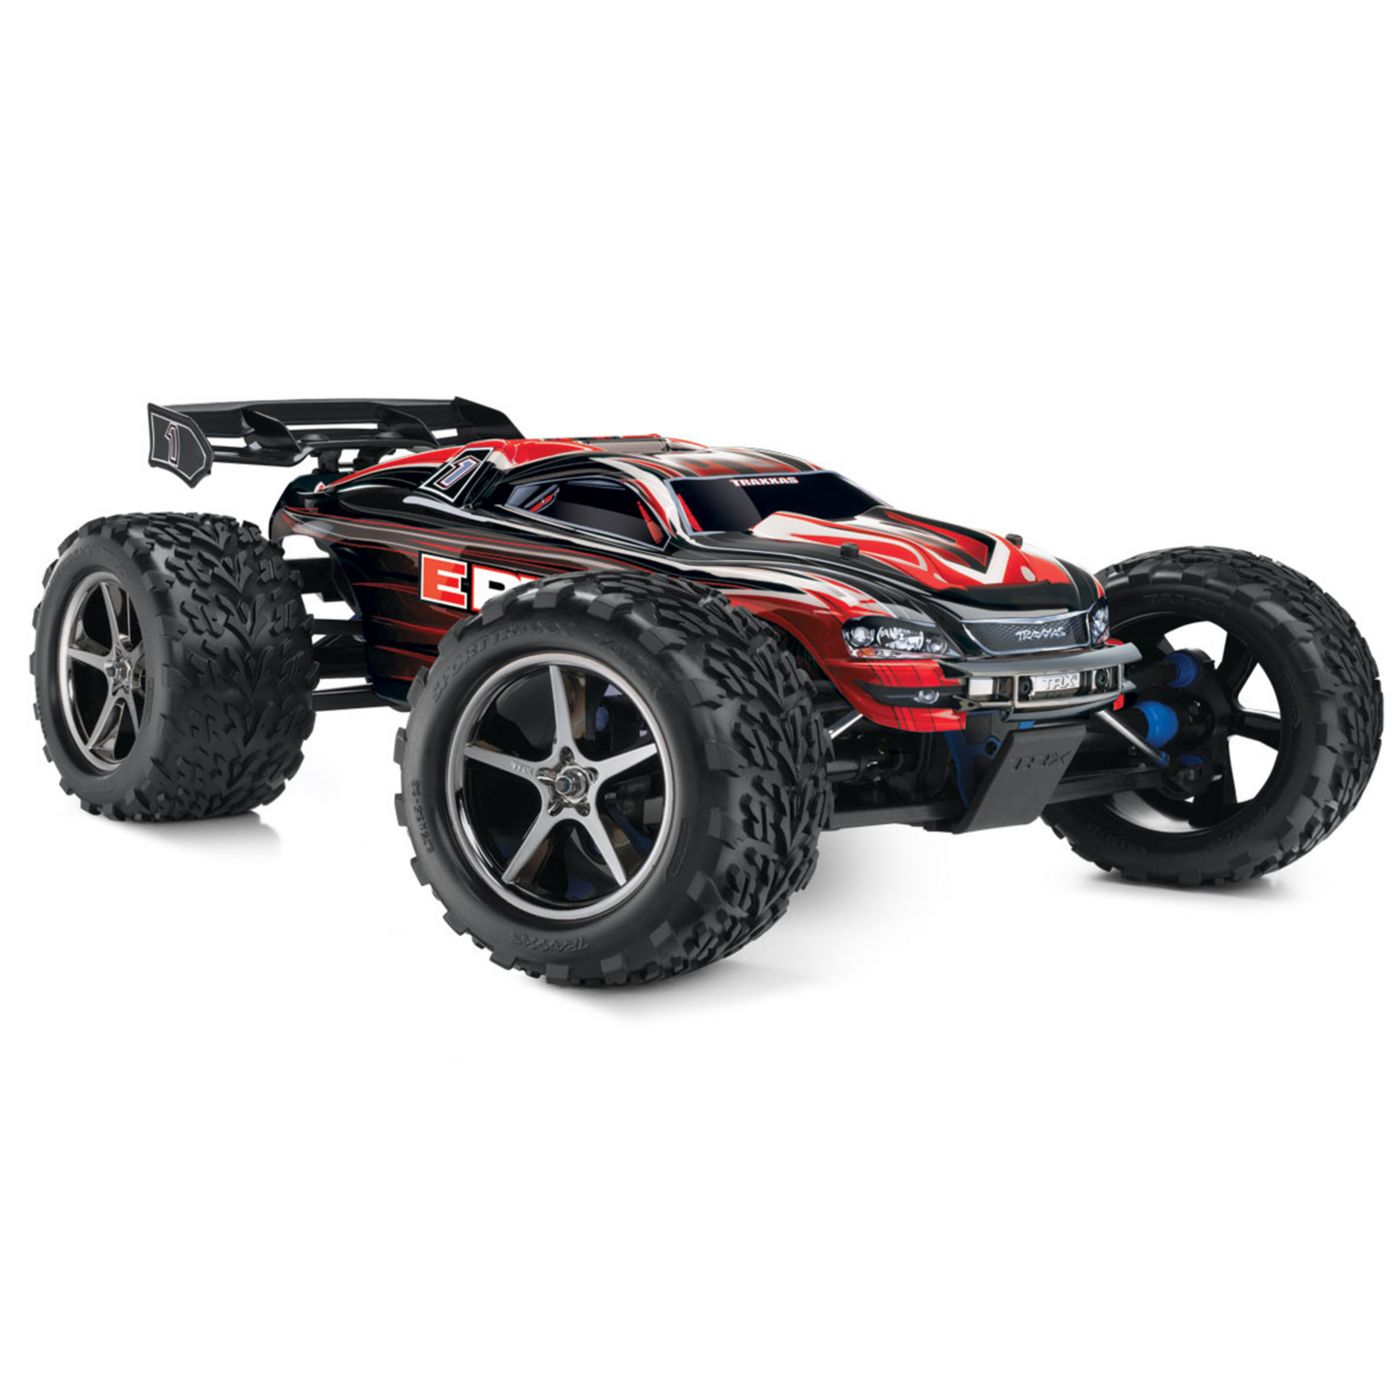 1/10 E-Revo 4WD Monster Truck Brushed RTR with TSM, Red